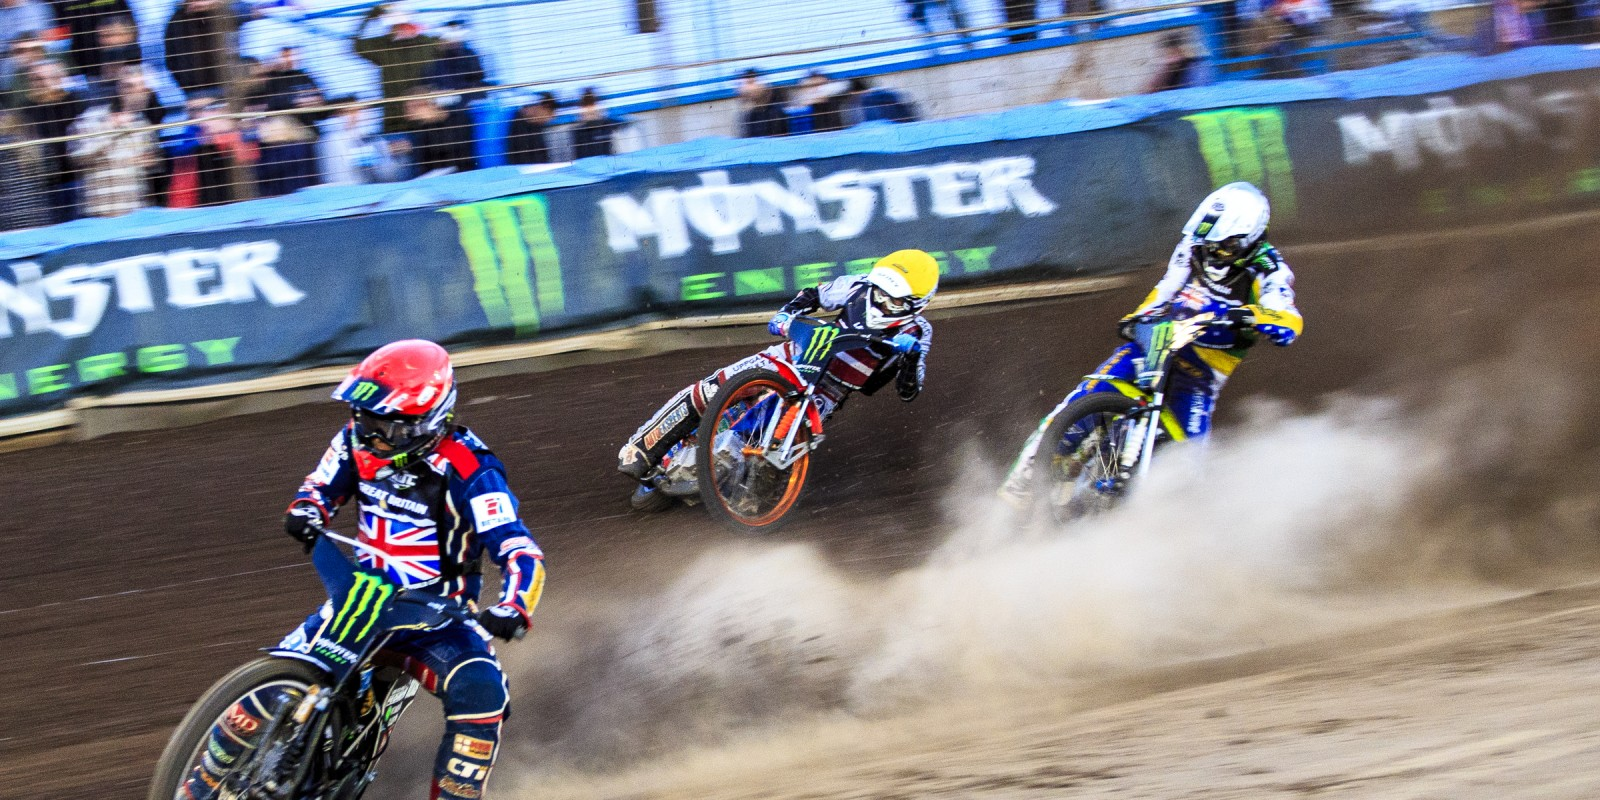 Images from Event Two of the 2015 Speedway World Cup